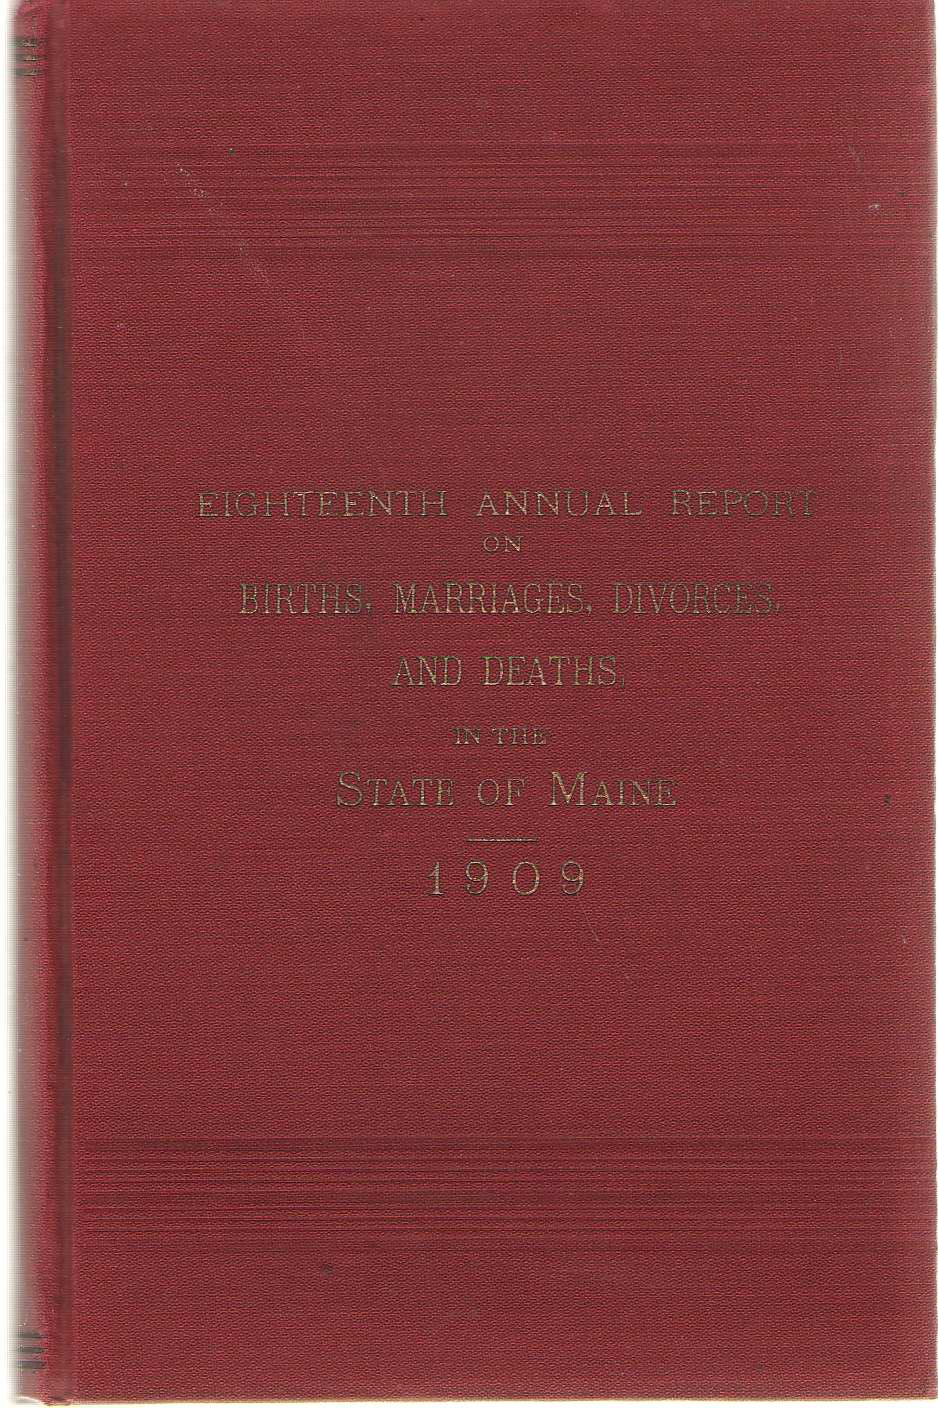 Eighteenth Annual Report On Births, Marriages, Divorces, And Deaths, In The State Of Maine For The Year Ending December 31, 1909, No Author Noted